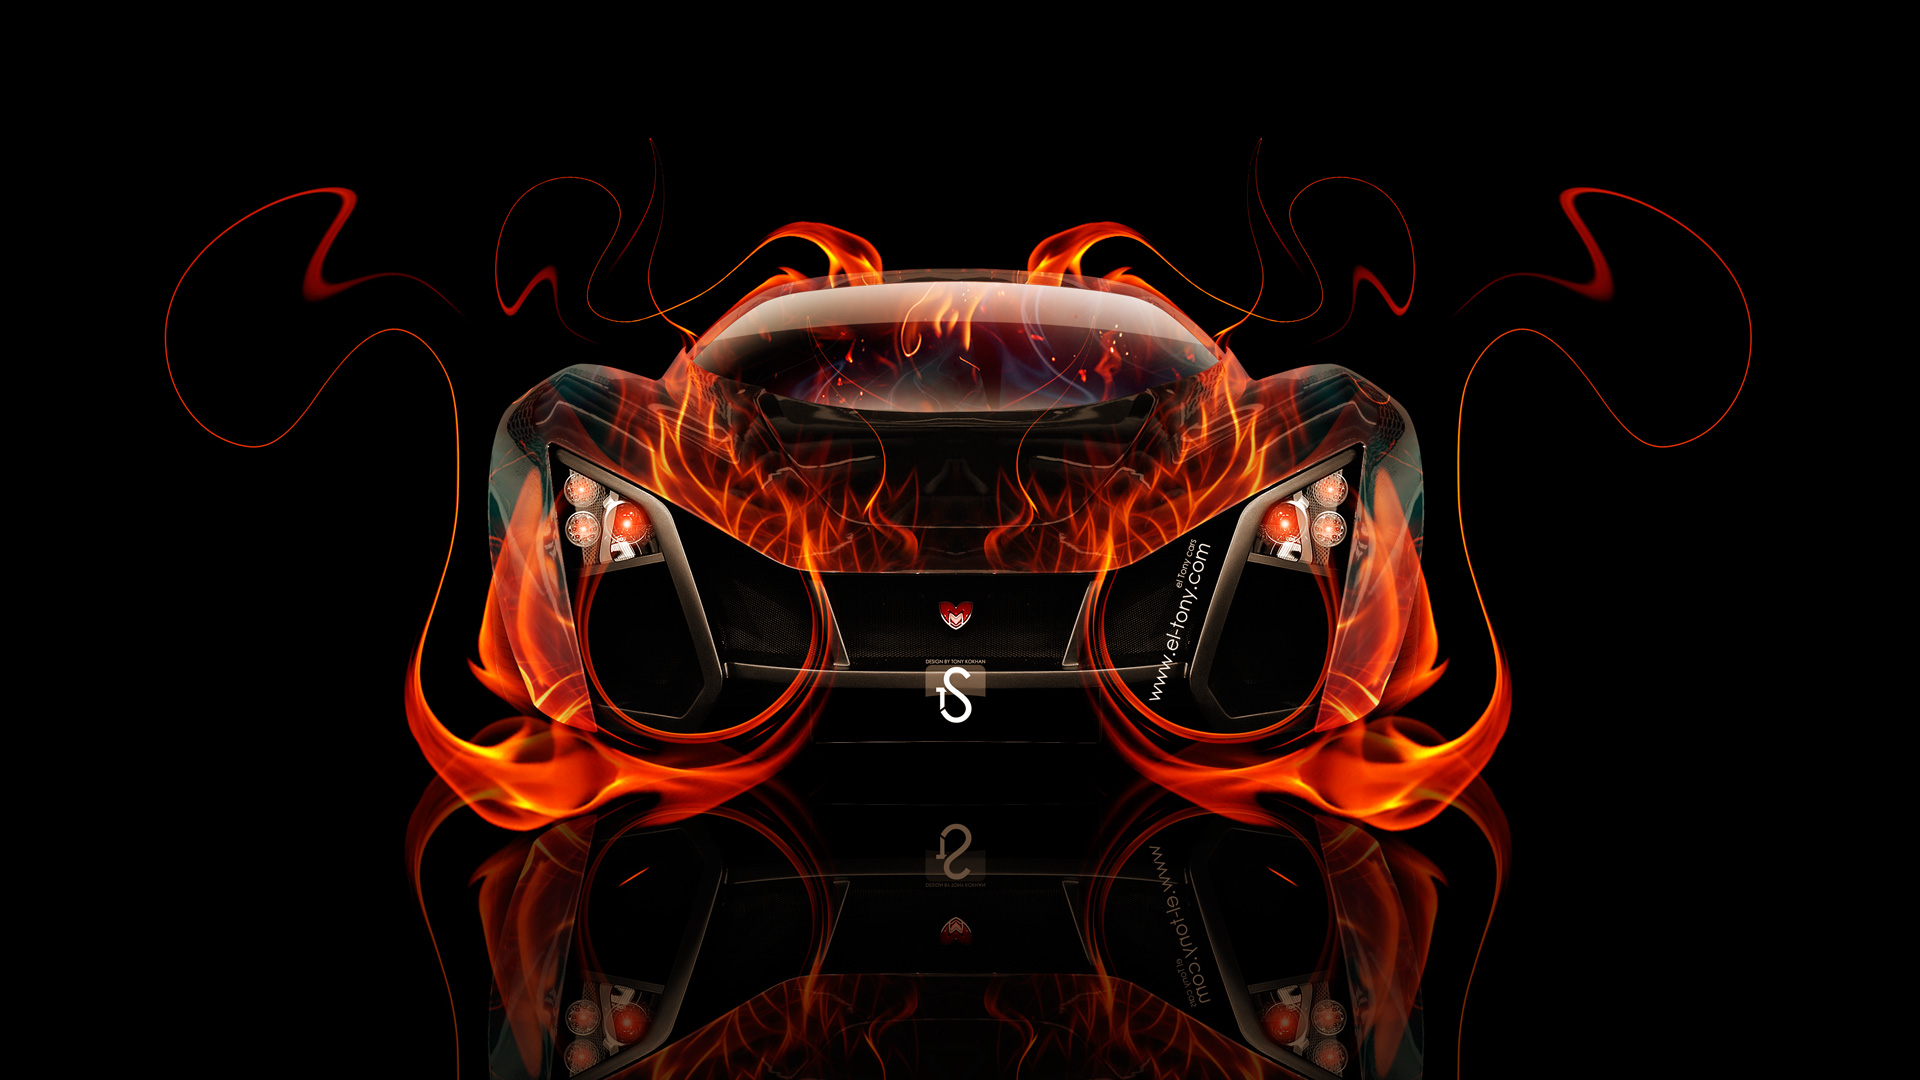 Merveilleux Marussia Russian Fire Abstract Car 2014 Design By